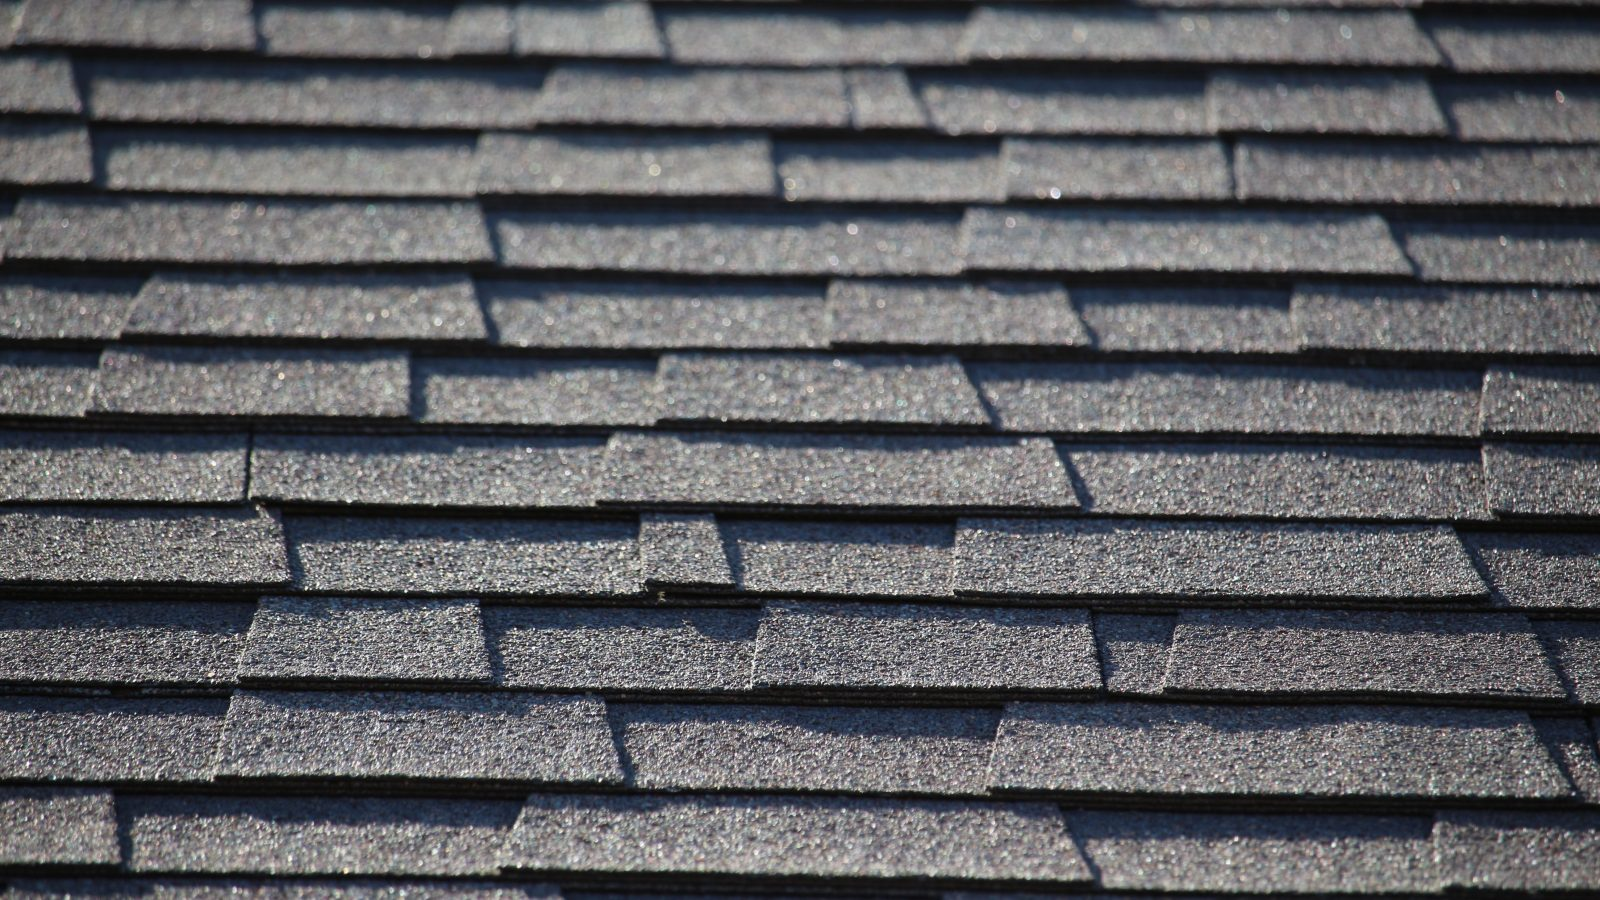 grey shale roof tiles